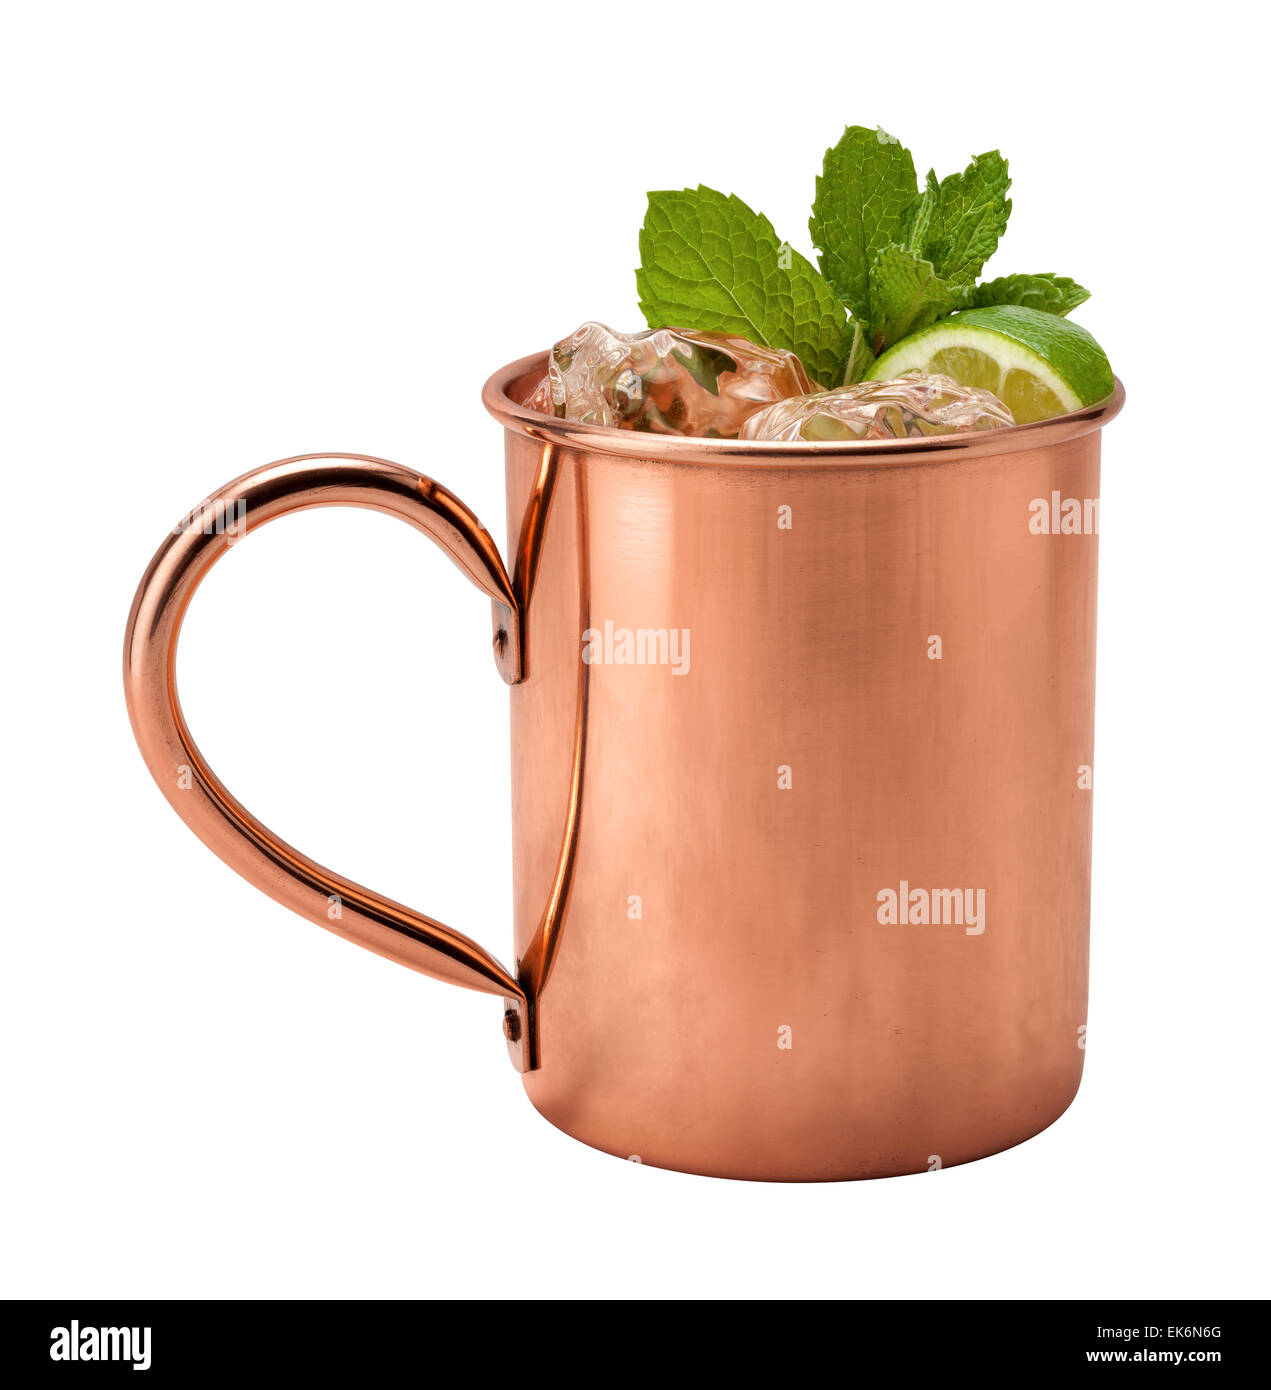 Moscow Mule in a Copper Mug. - Stock Image